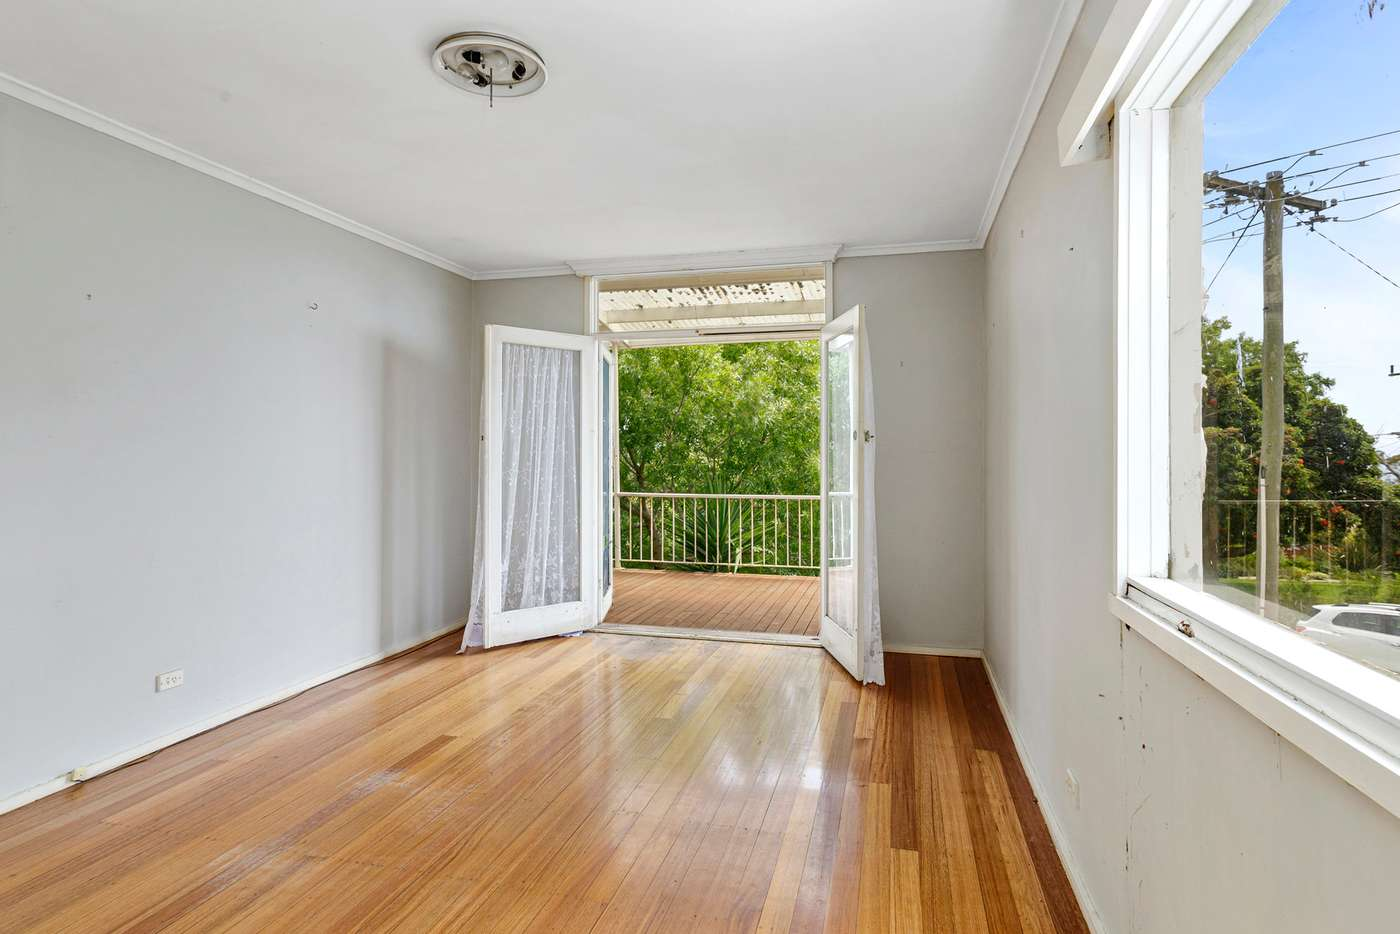 Sixth view of Homely house listing, 119 Flinders Street, Mccrae VIC 3938